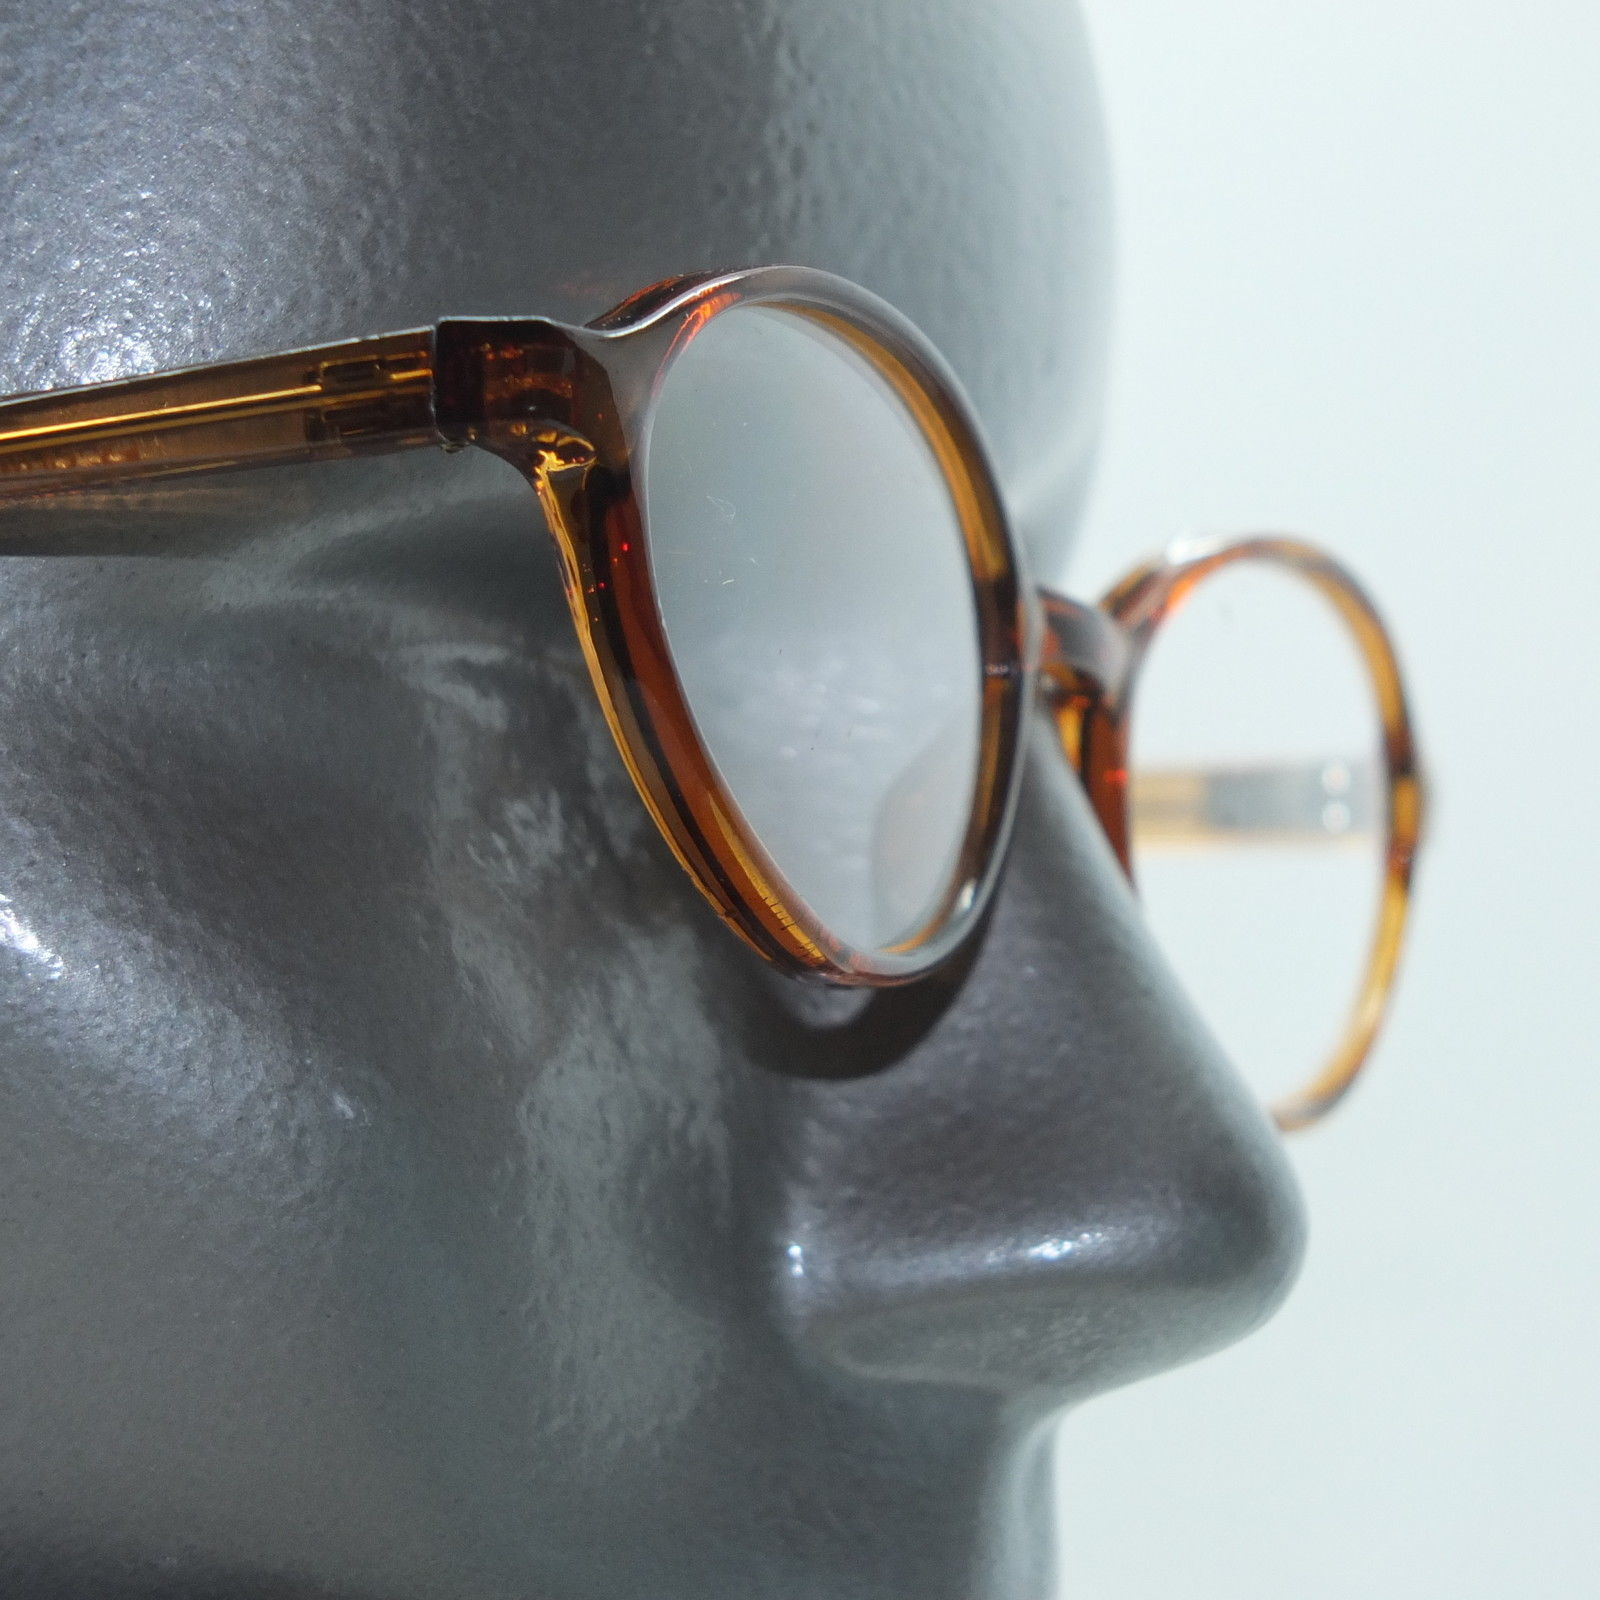 Primary image for Reading Glasses +1.00 Lens Caramel Oval Lightweight Frame Sophisticated Styling